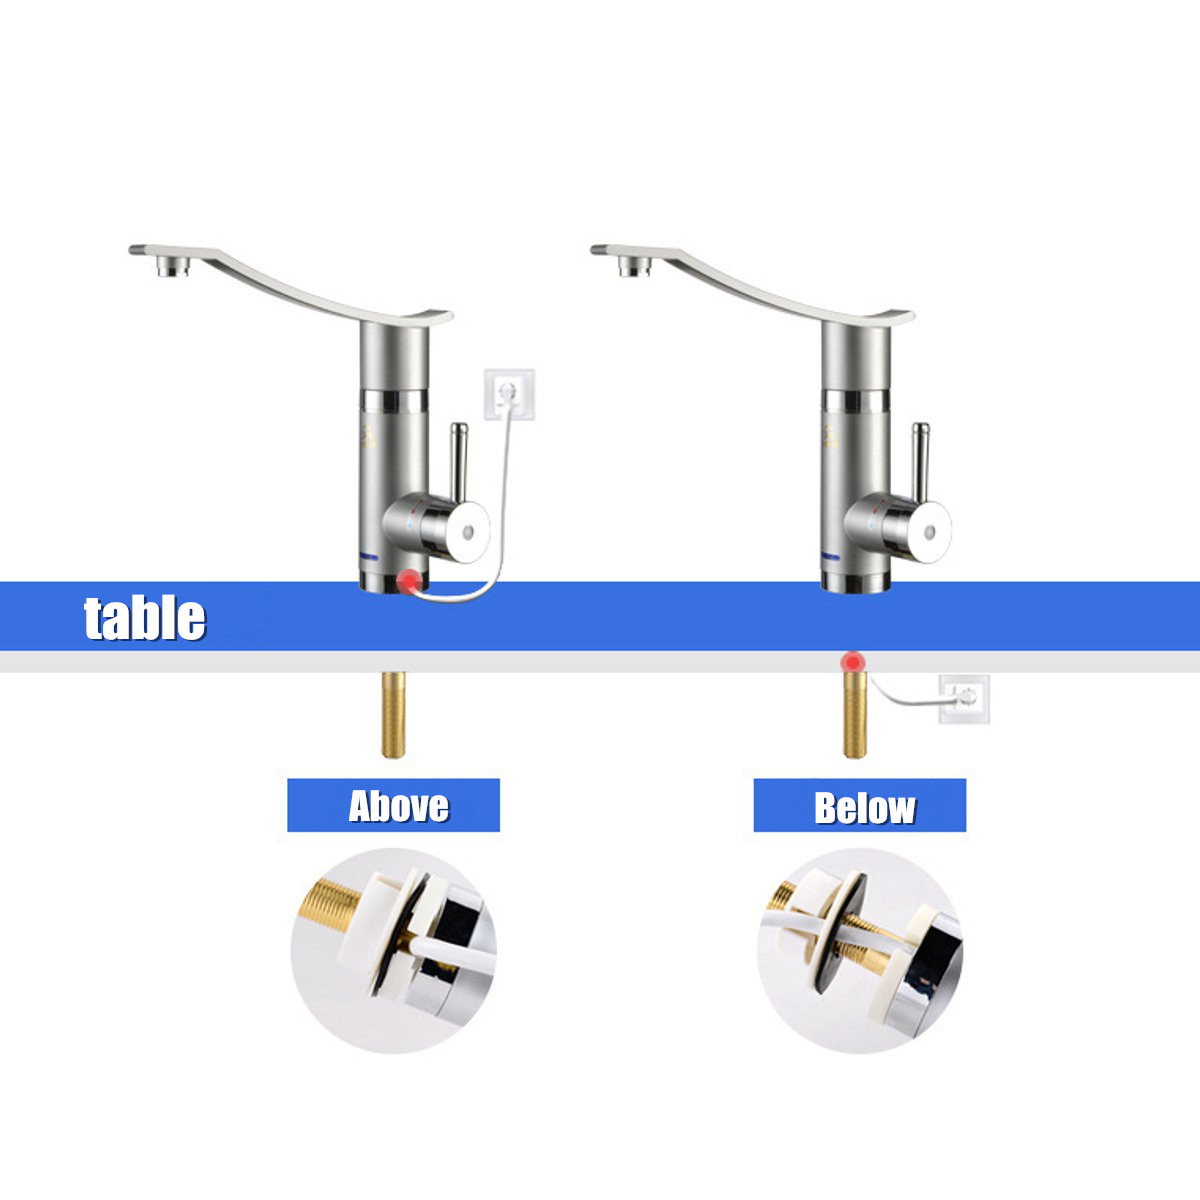 3000W Instant Electric Faucet Kitchen Hot Water Fast Heater Under Inflow 360º Rotate Indicator Light